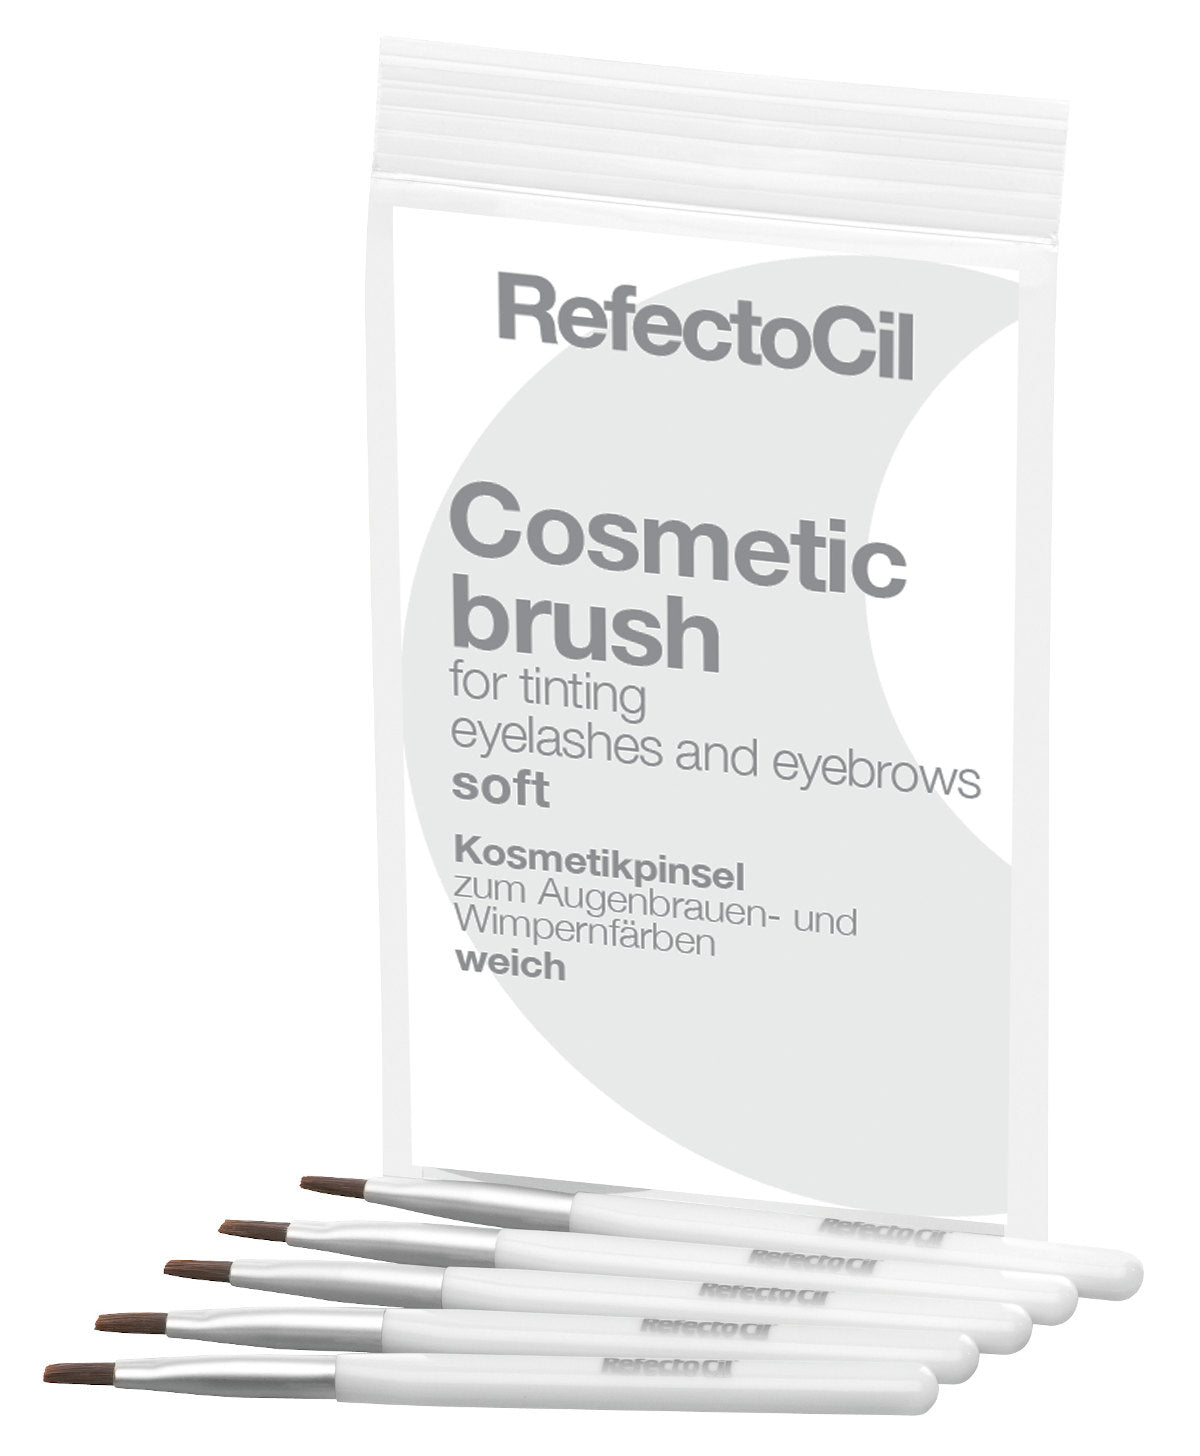 RefectoCil Cosmetic Brushes - Soft